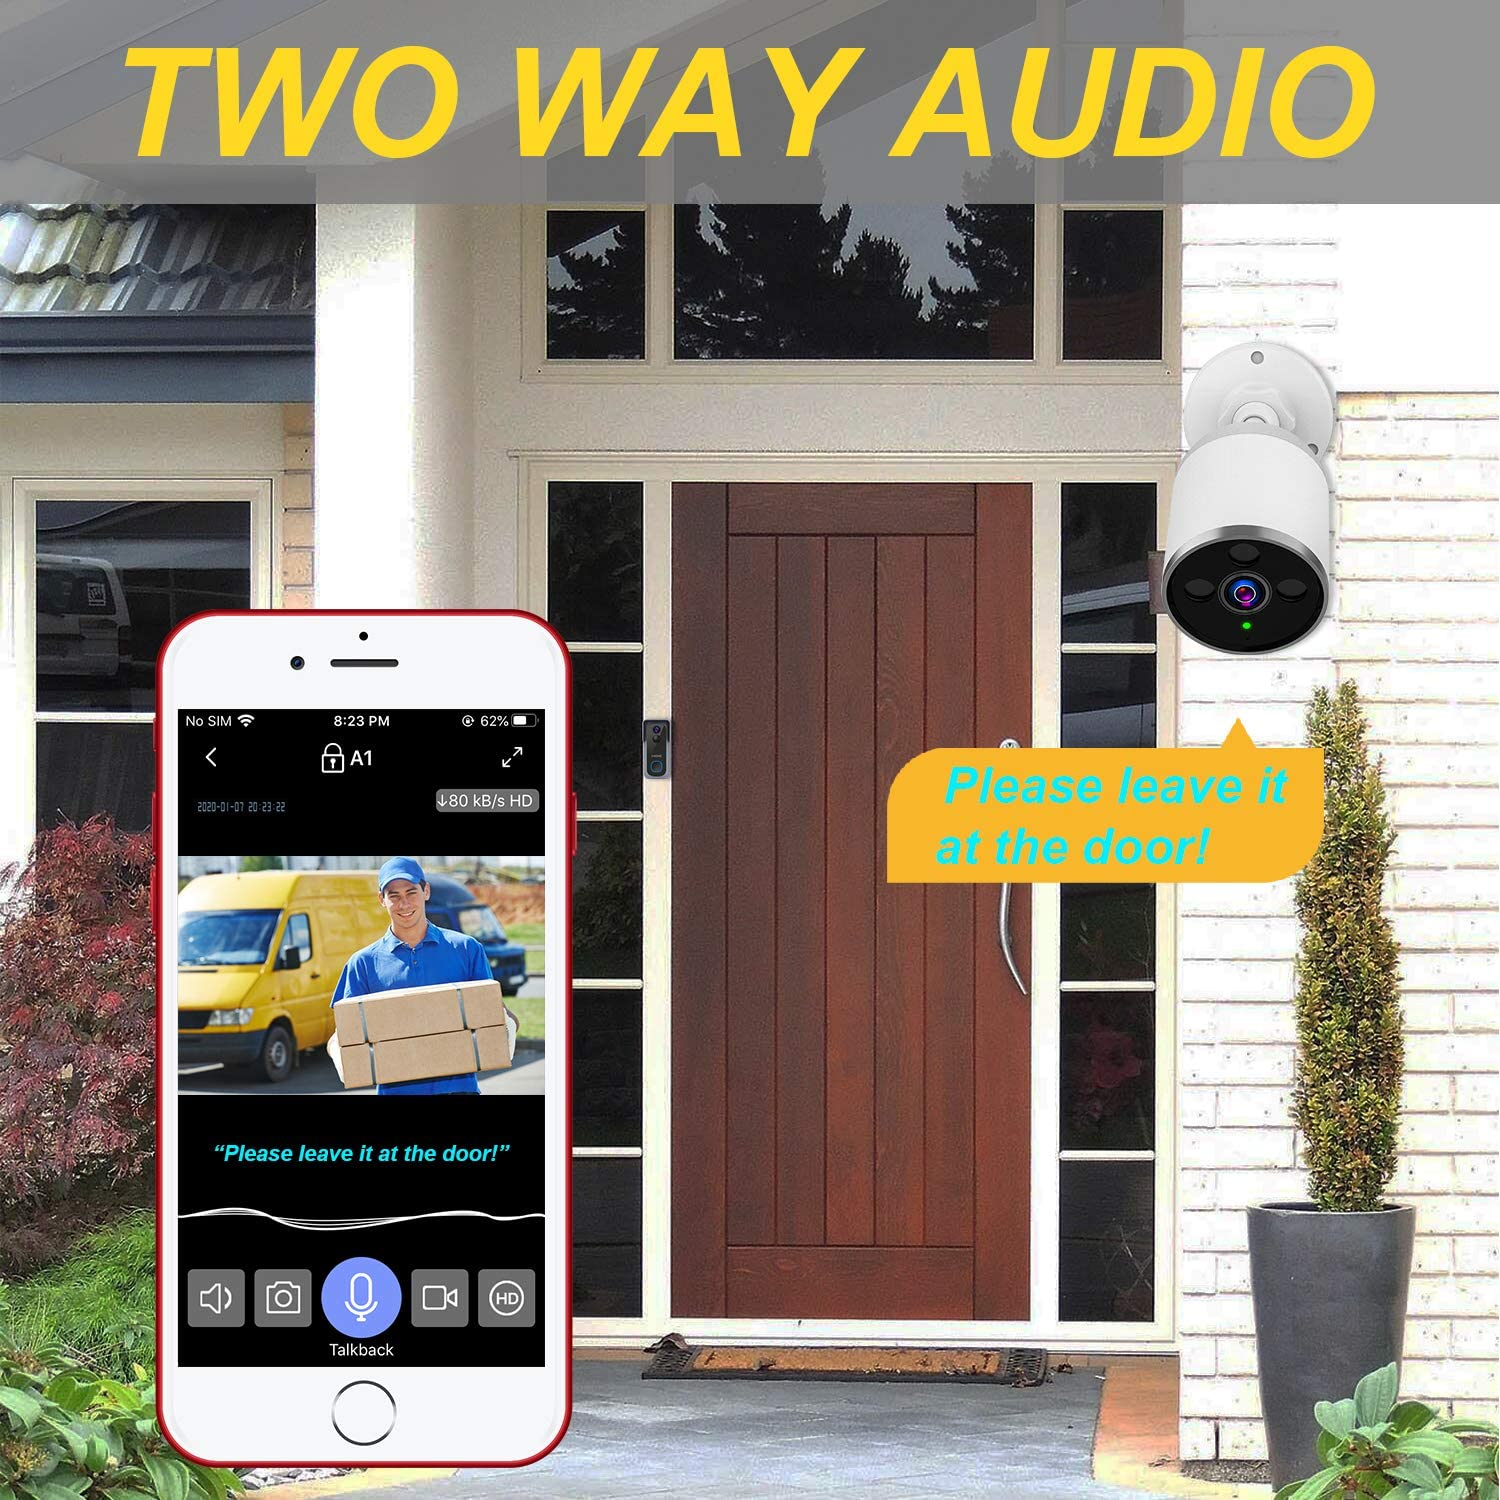 2-Way Audio Cloud Storage//SD Slot for Waterproof Surveillance System 2.4G WiFi//Ethernet 1080P Night Vision AHOME A1 Outdoor Security Camera Wireless with Motion Detection Deterrent Alarm Black